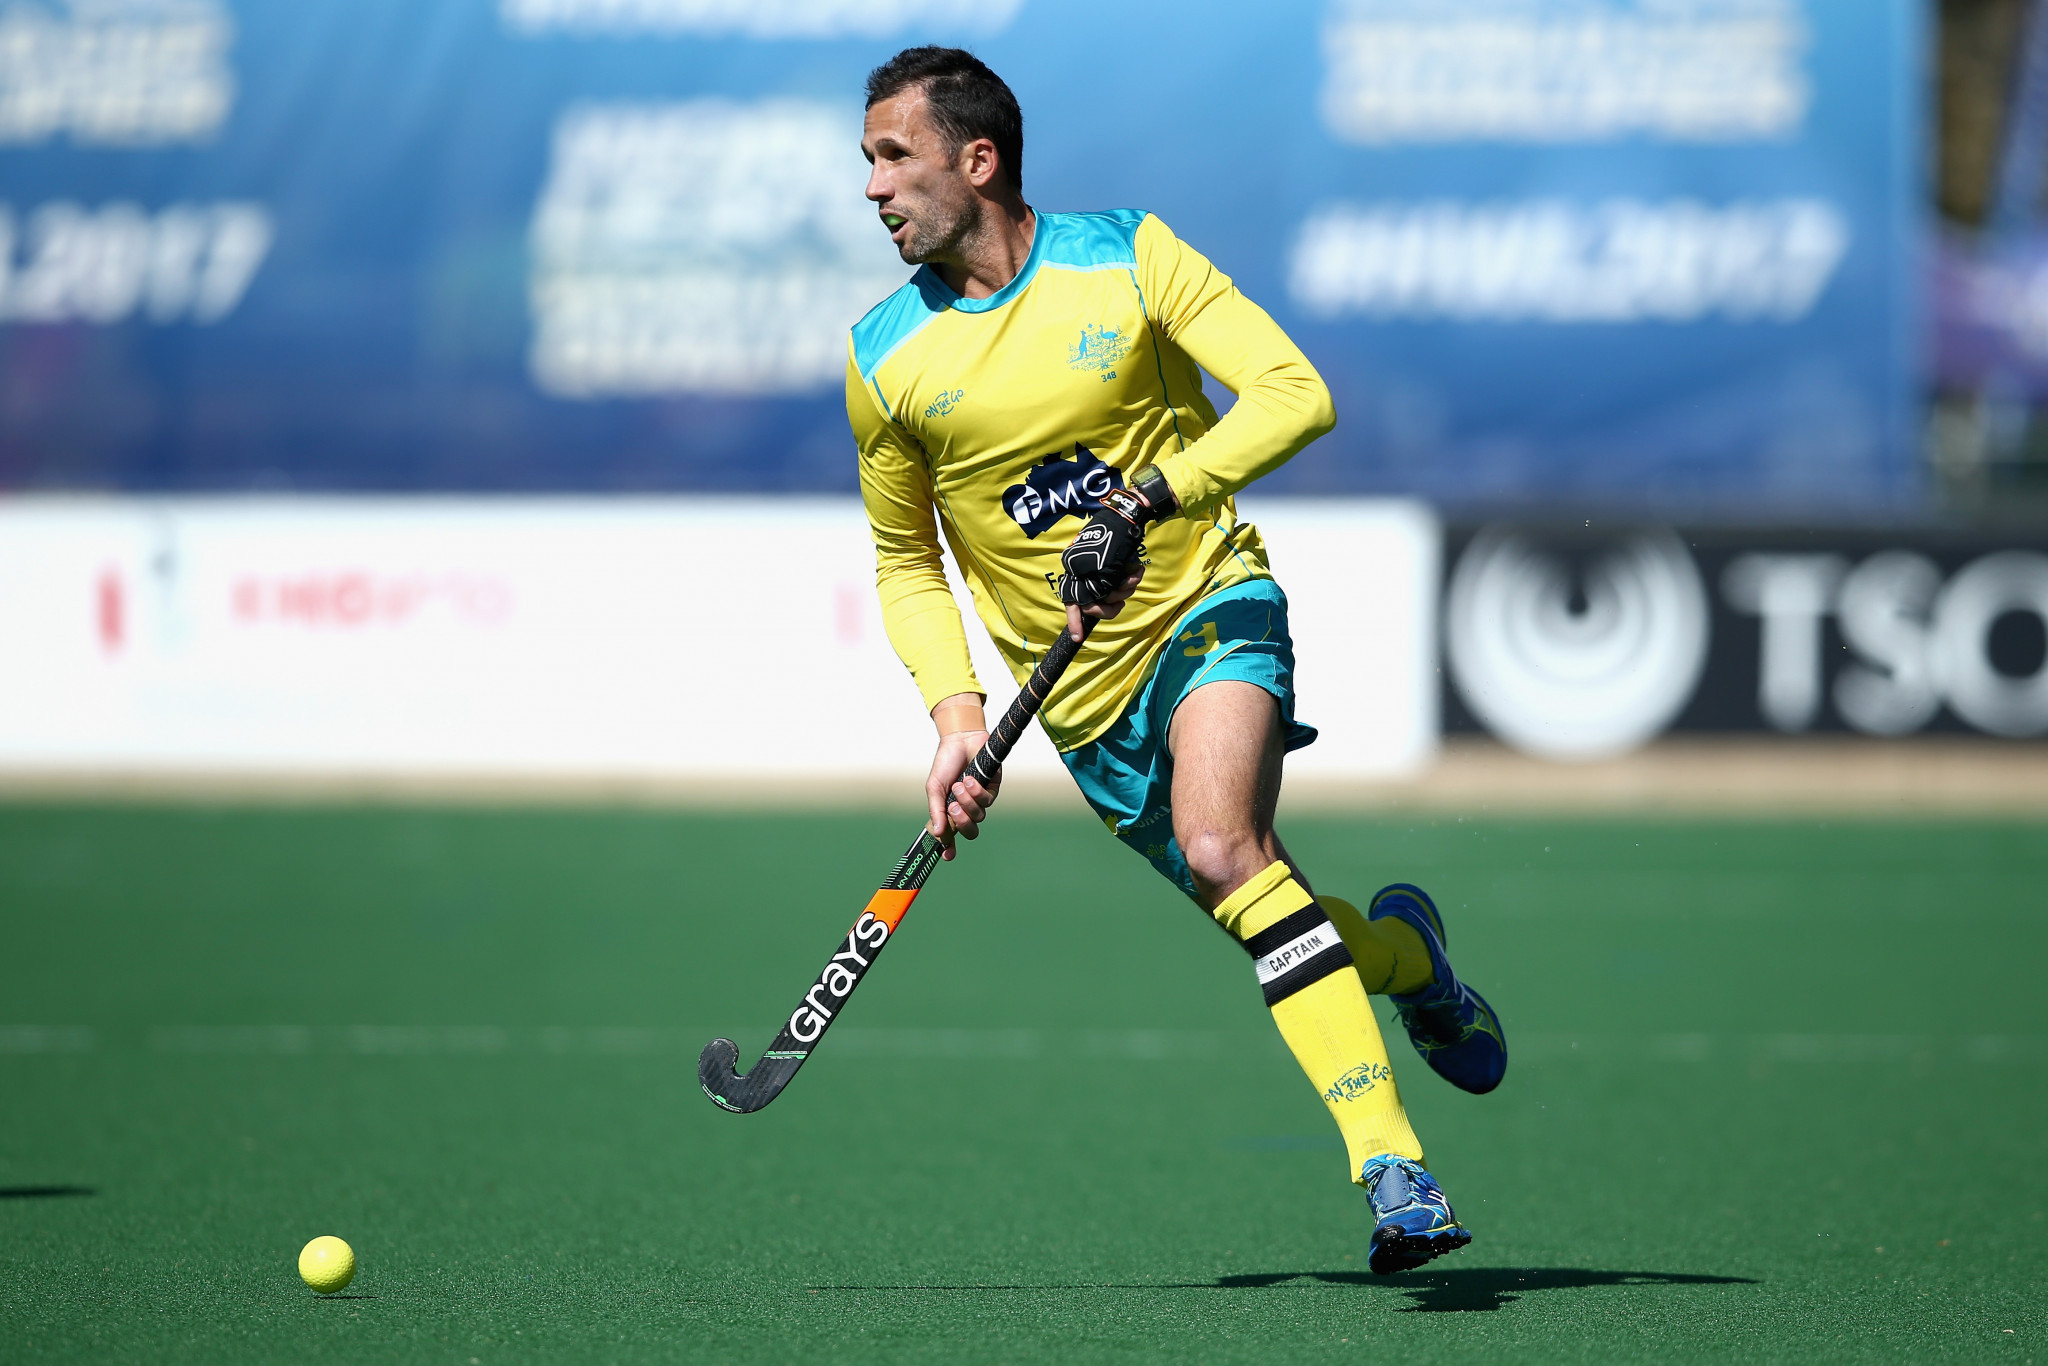 Olympic hockey gold medallist Knowles to carry Australian flag at Gold Coast 2018 Opening Ceremony